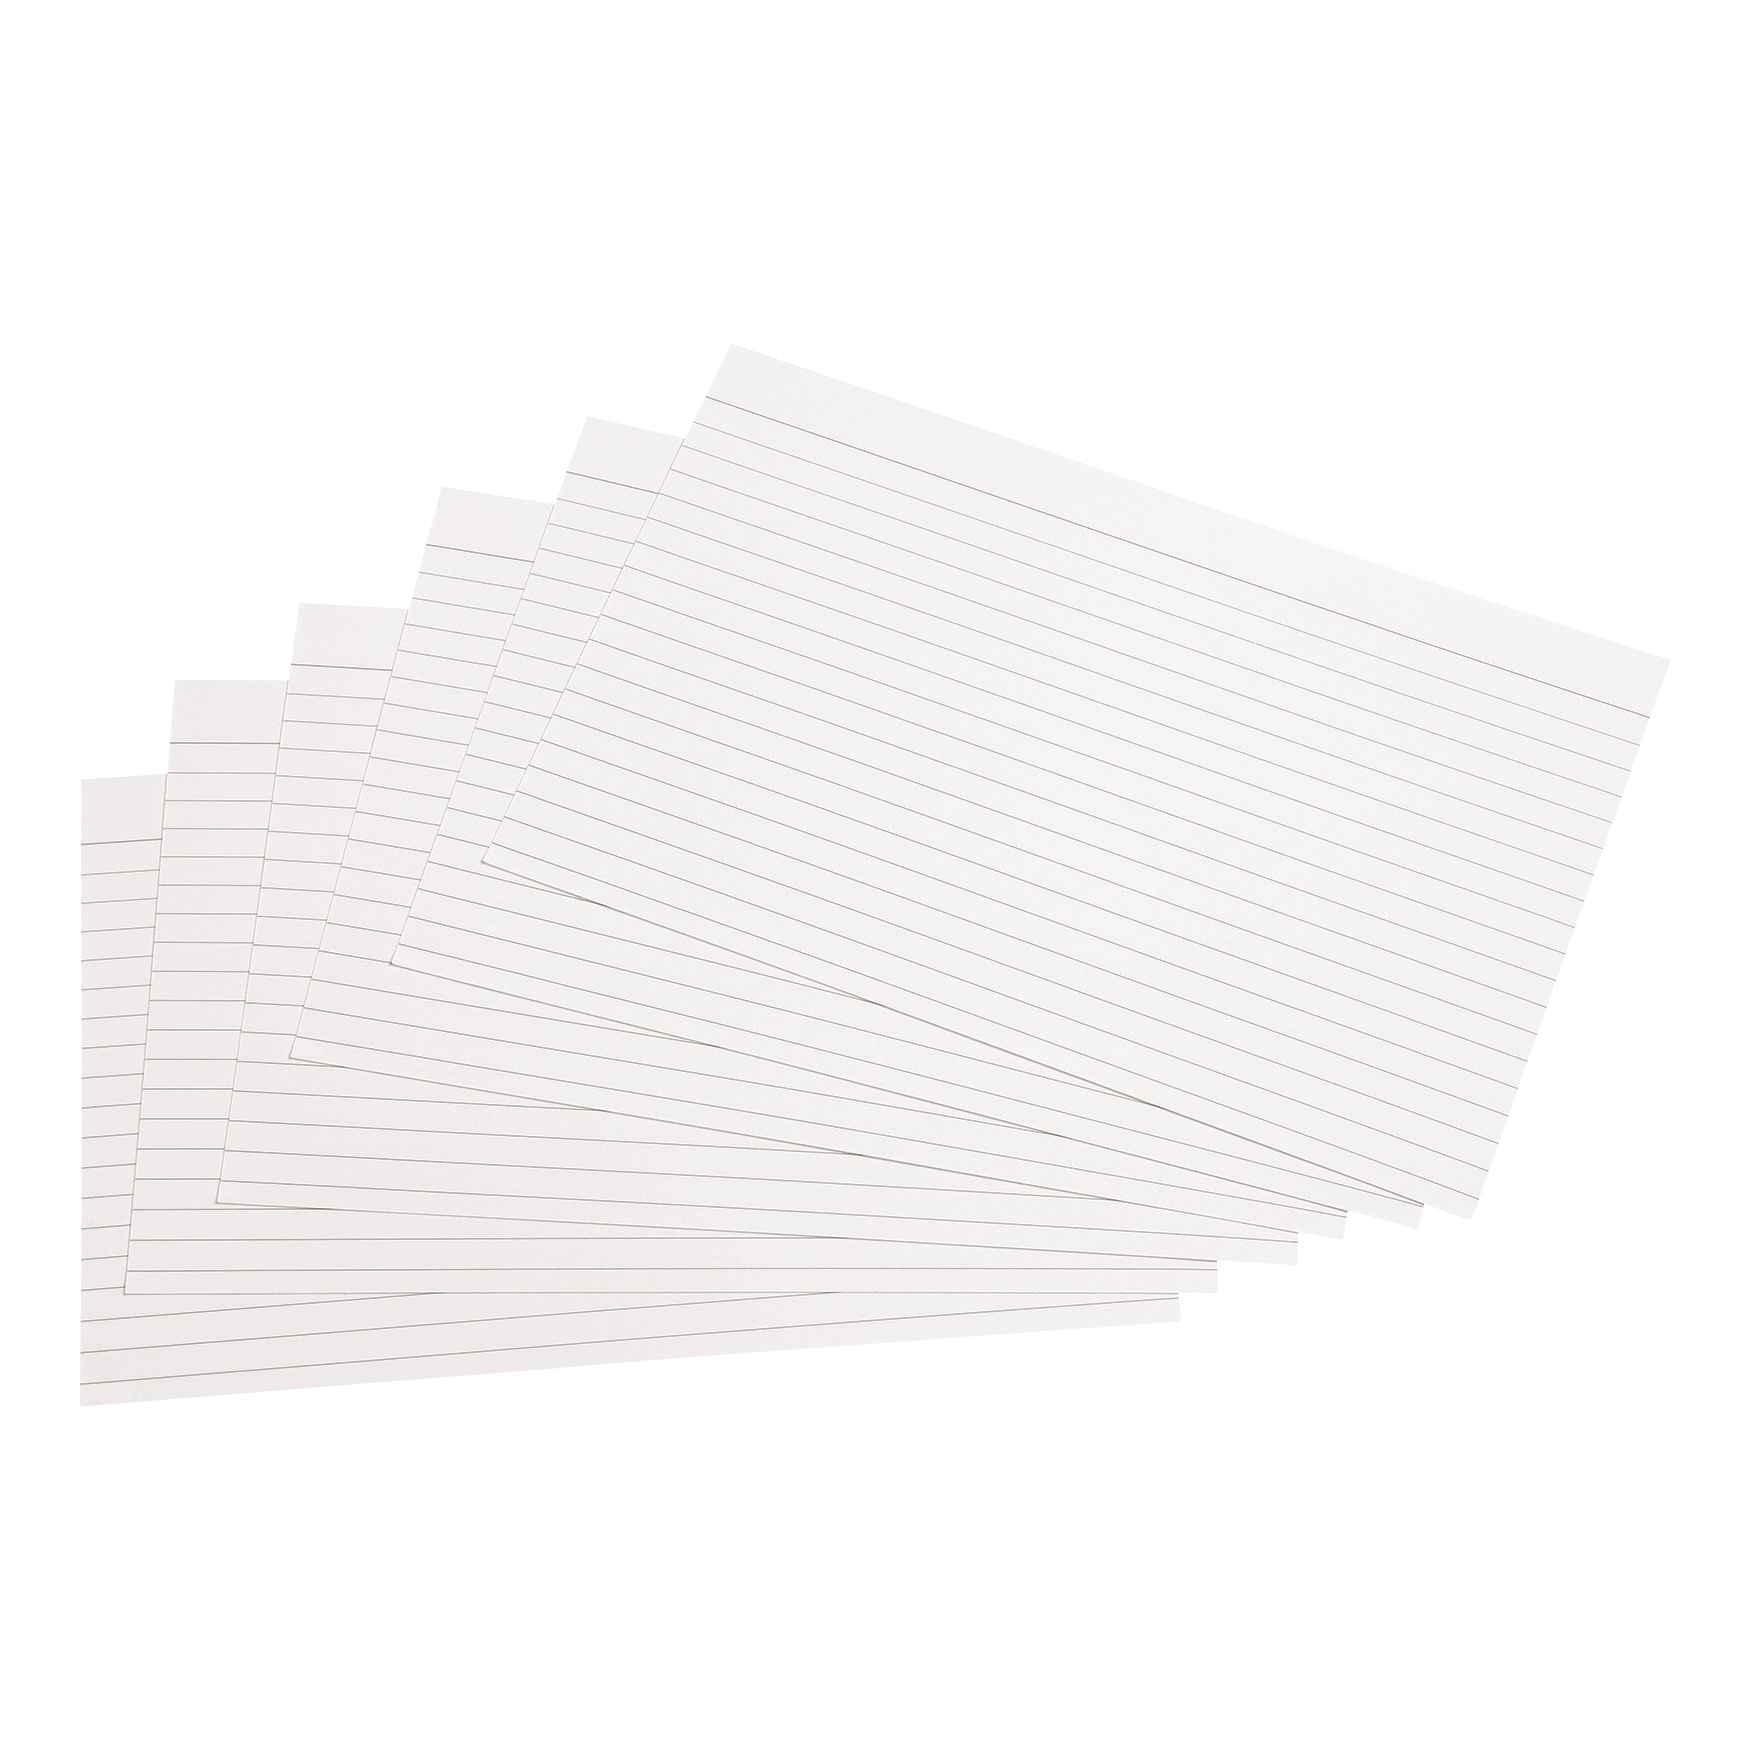 Record Cards 5 Star Office Record Cards Ruled Both Sides 8x5in 203x127mm White Pack 100